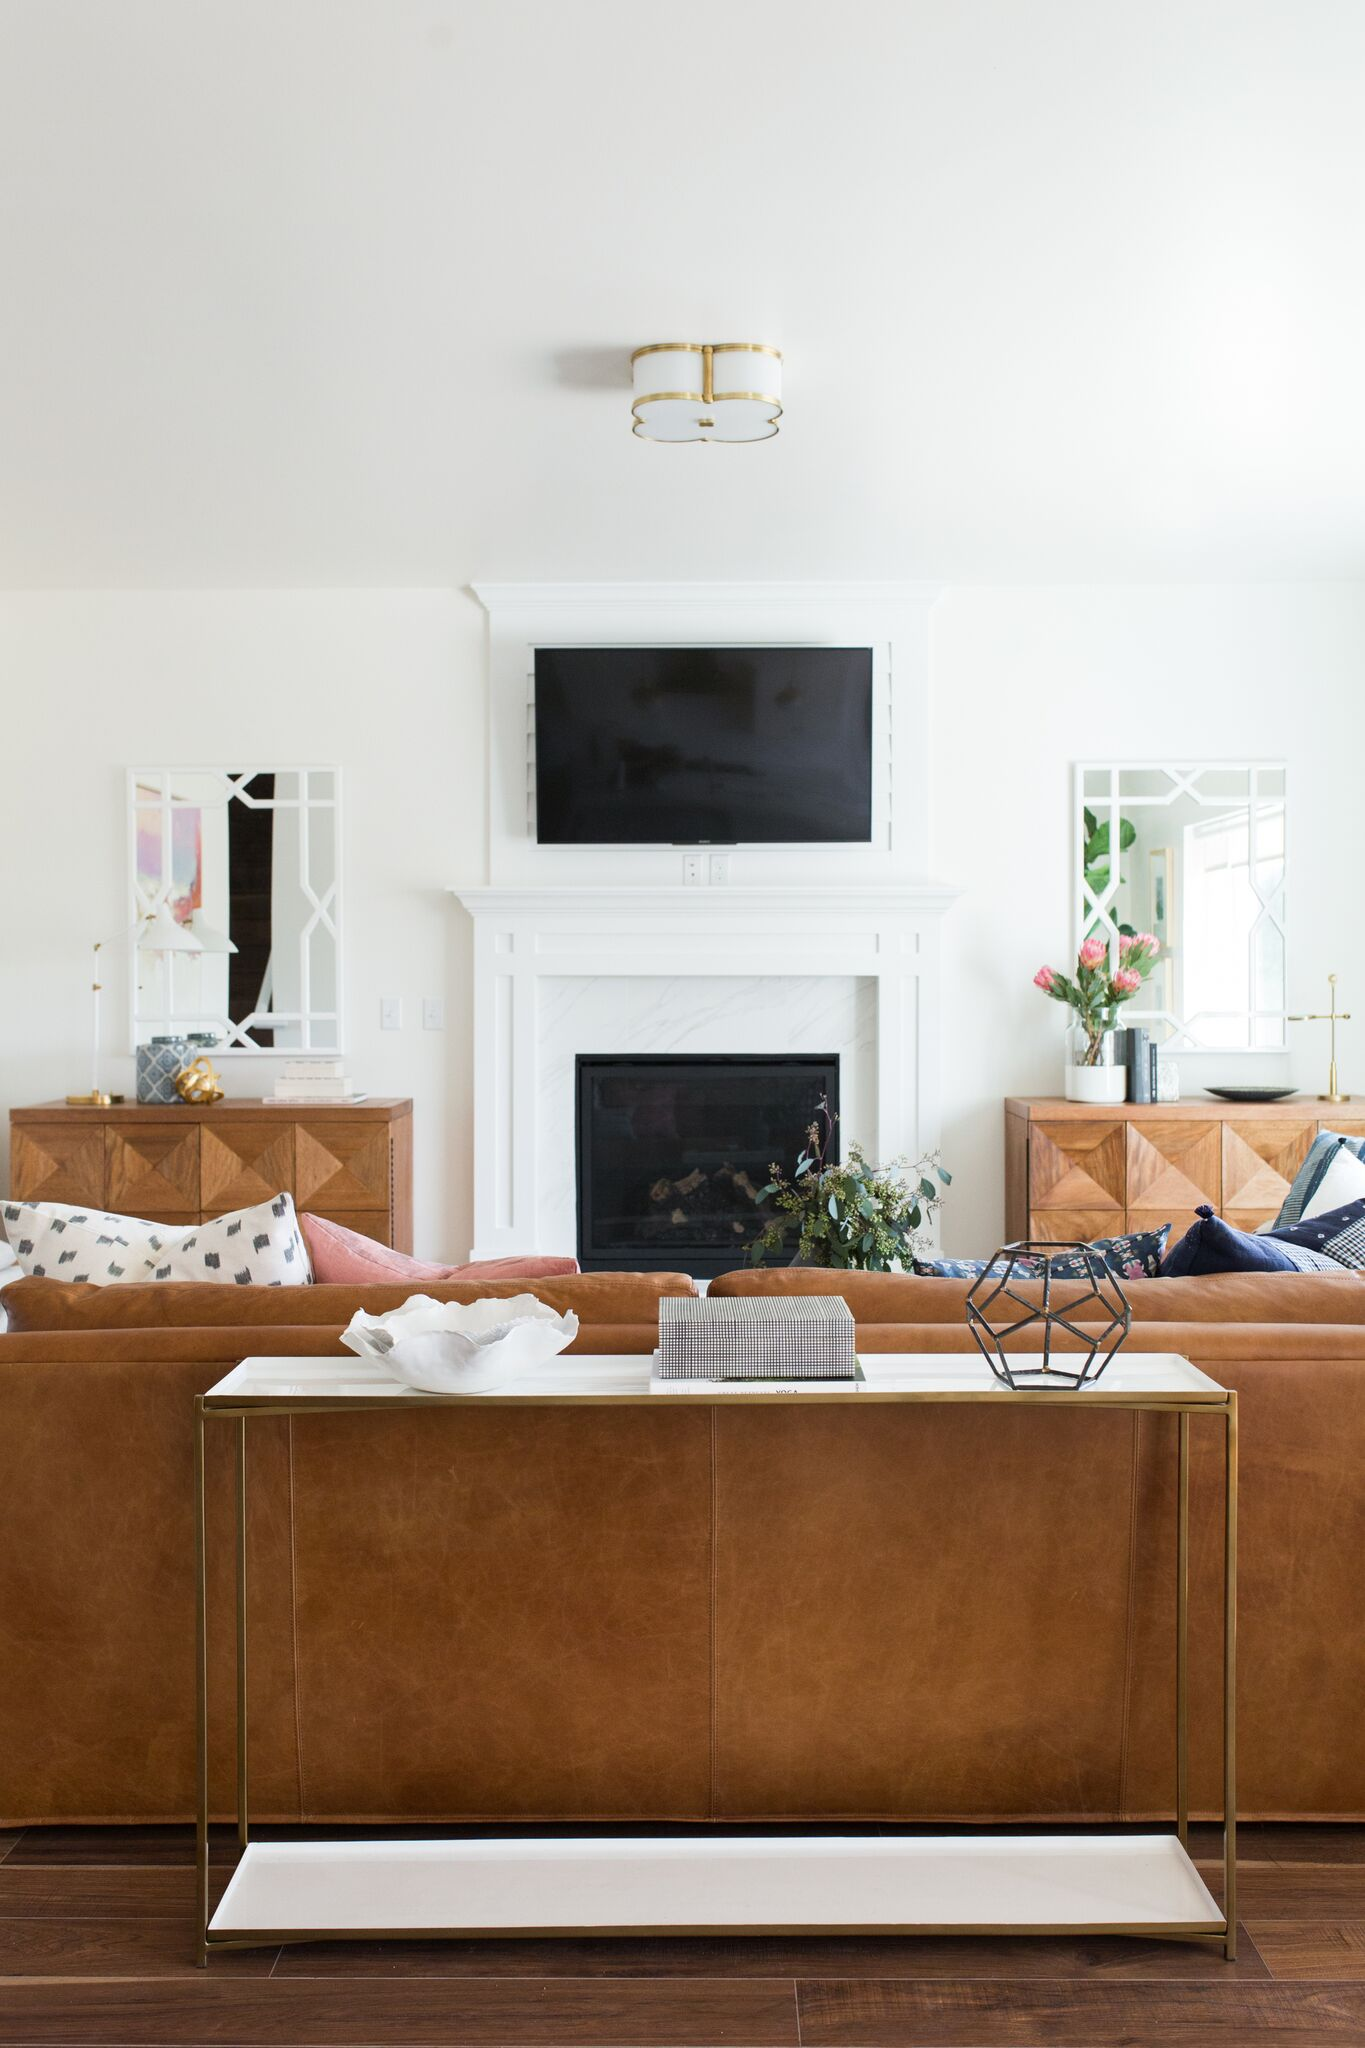 Brown table behind large sectional couch